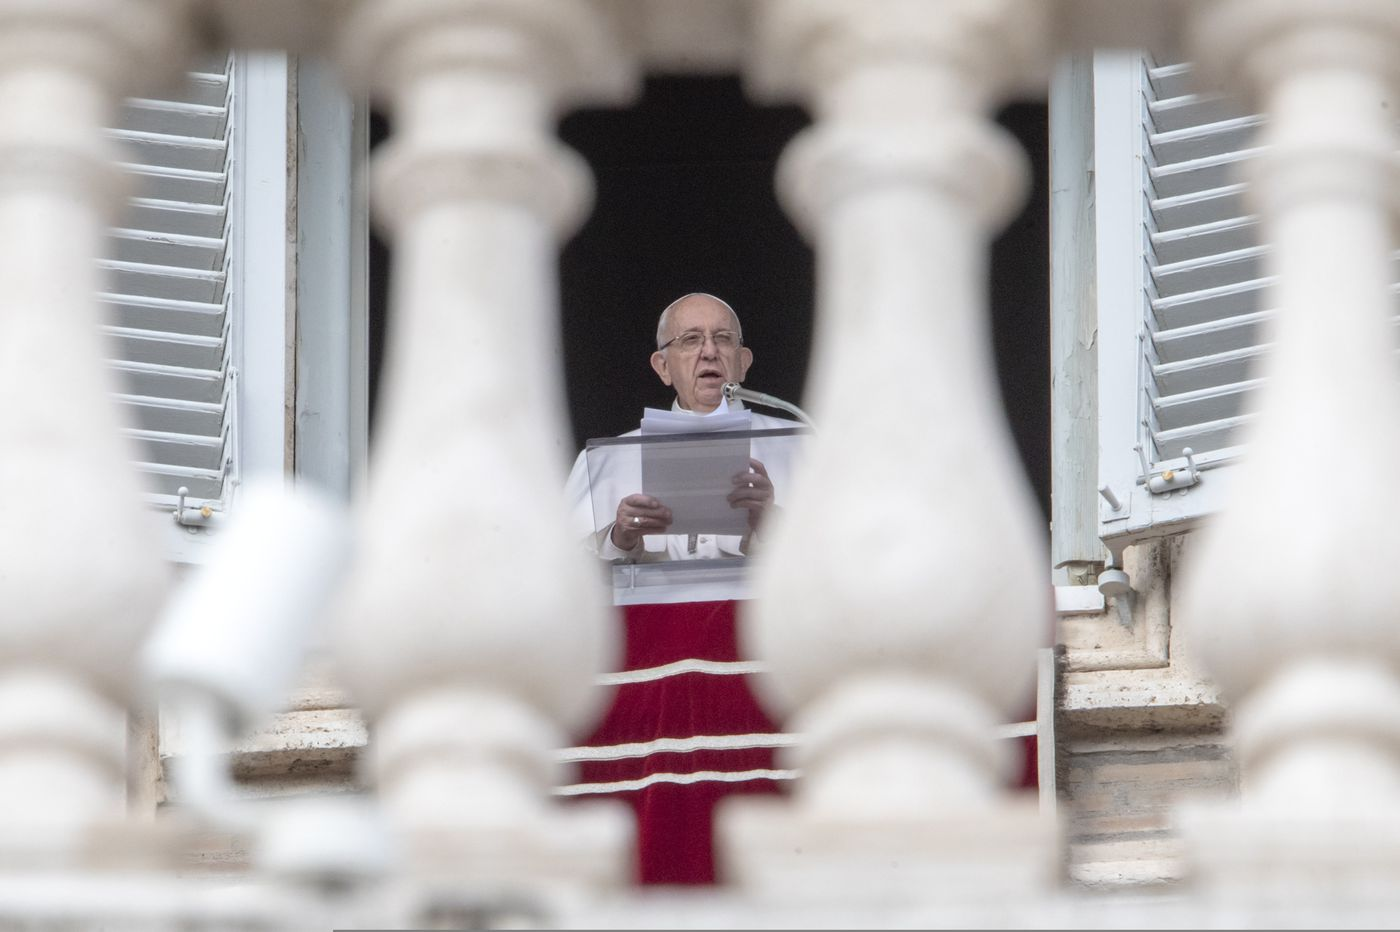 Book alleges 80% of Vatican priests are 'gay'